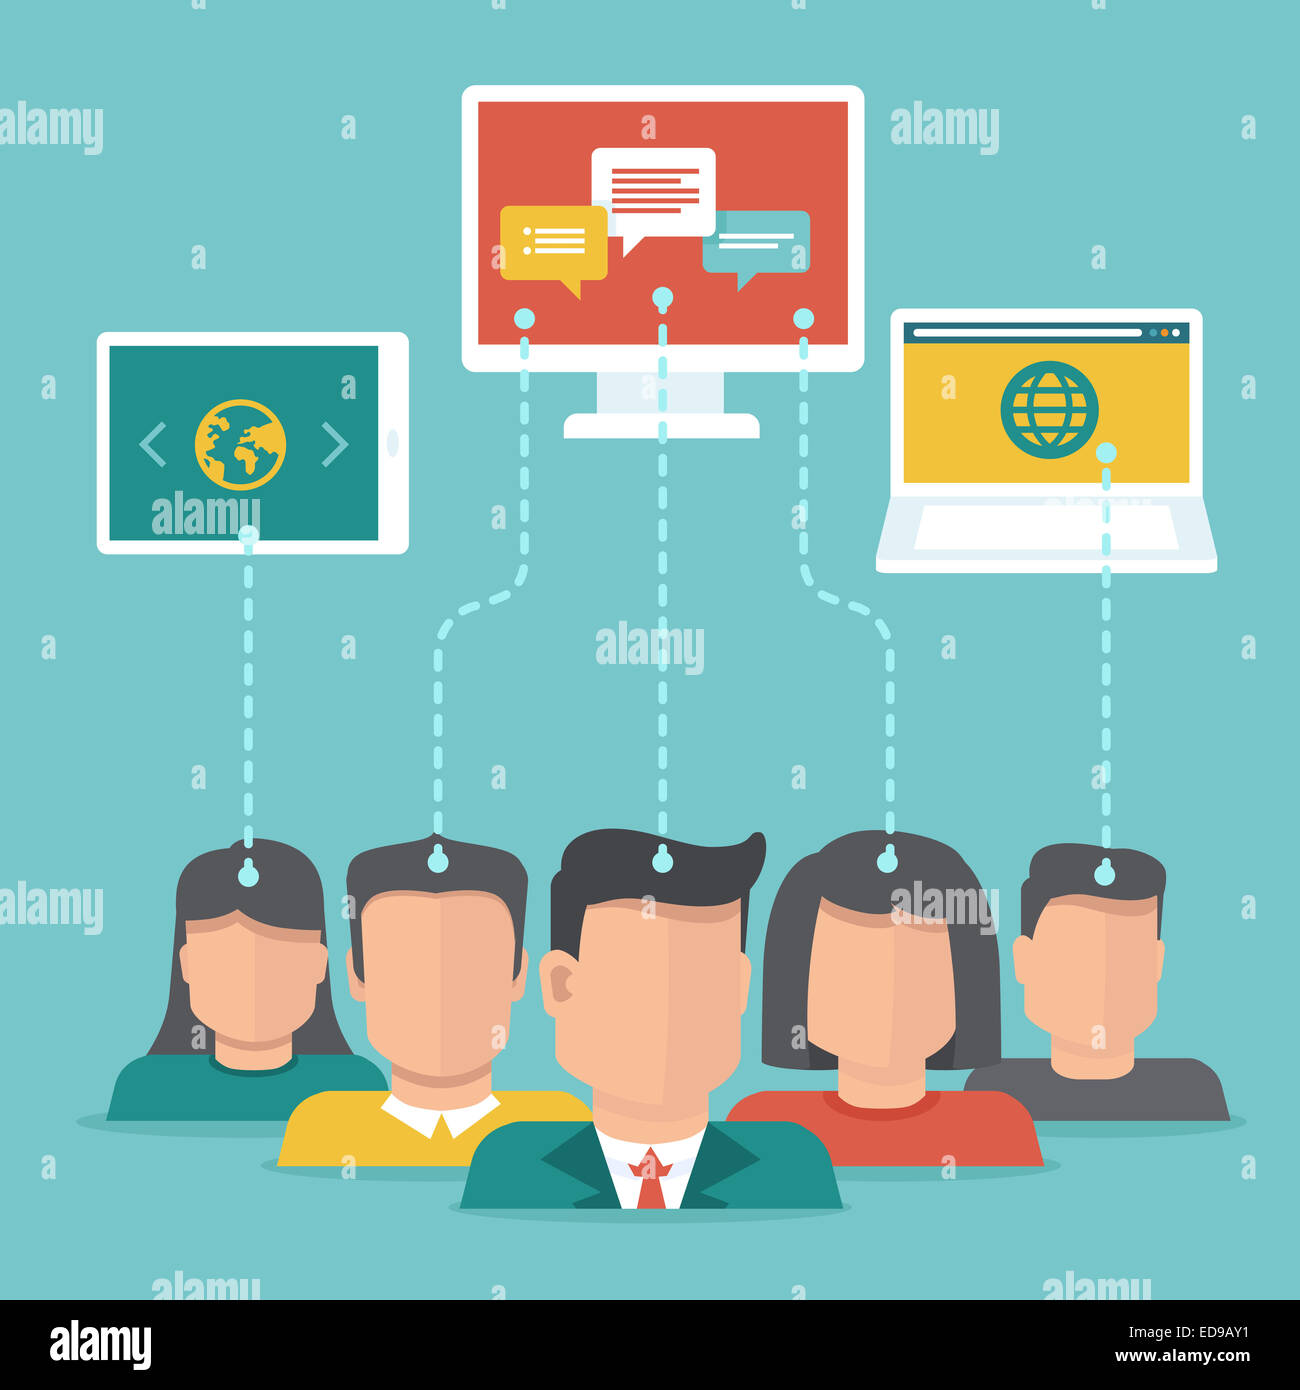 User generated content concept in flat style - users uploading digital content - Stock Image